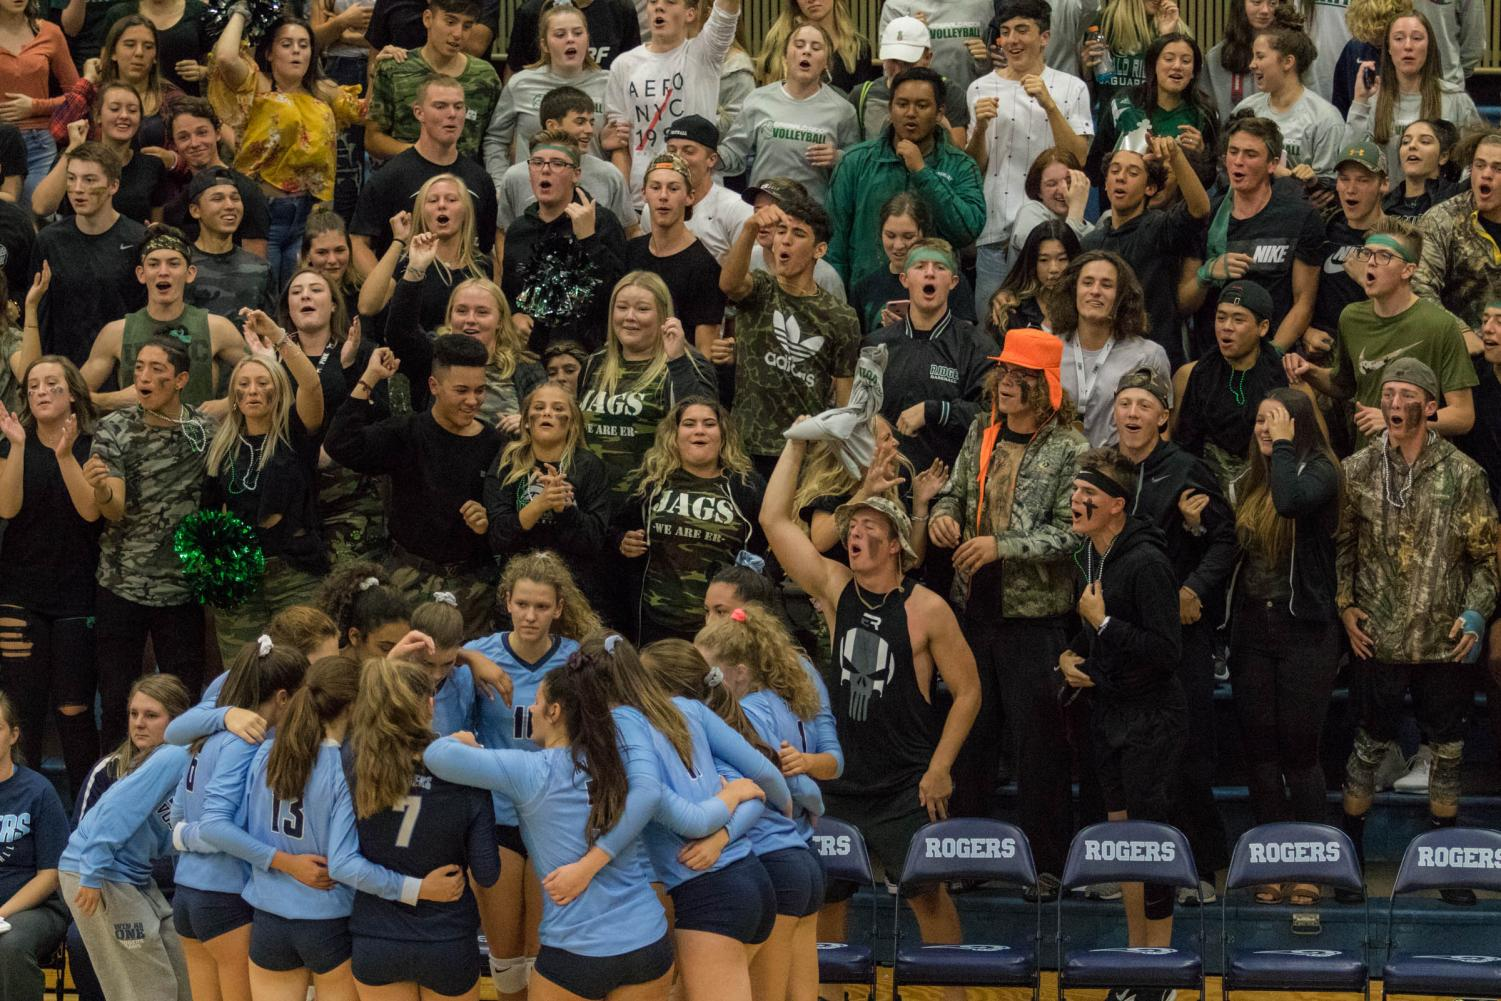 The Emerald Ridge cheering section made plenty of noise behind the Rogers bench at the Queen of the Hill contest on Sept. 26, 2018.